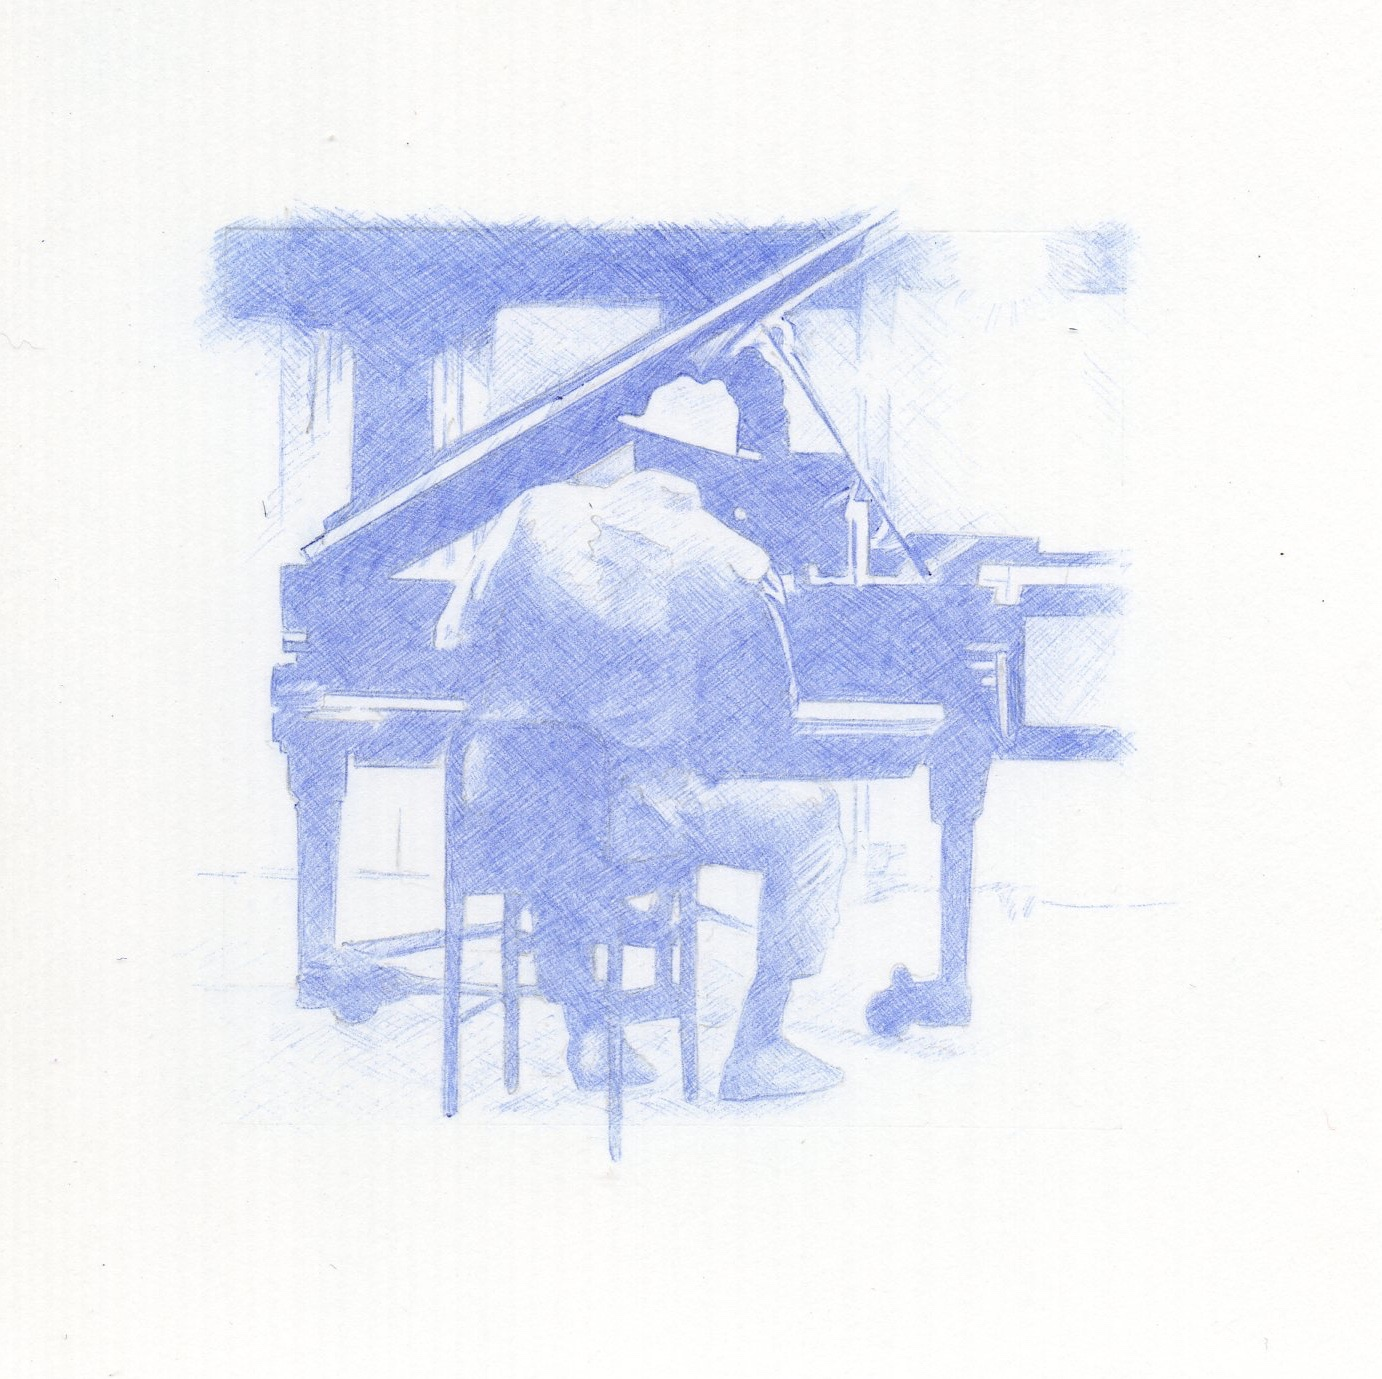 Thelonius Monk 2x2 inch blue ball point pen drawing. Done in 2005